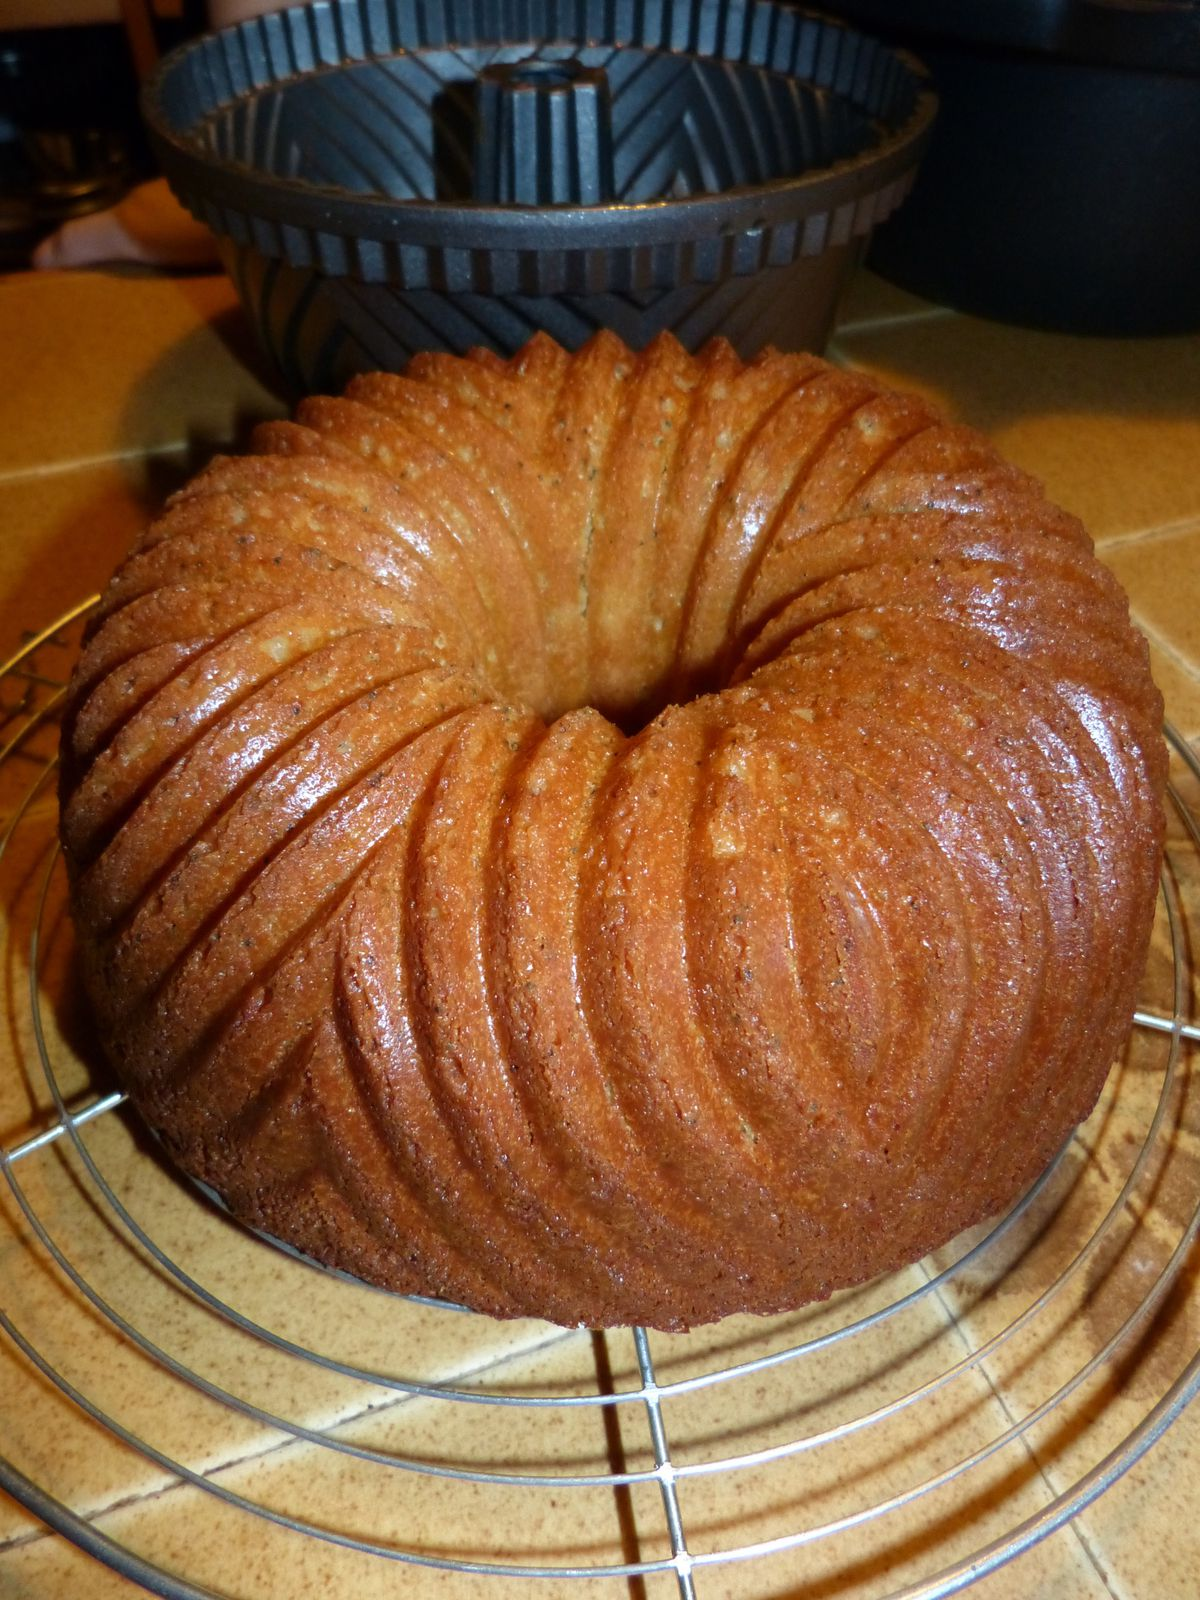 Bundtcake citron pavot au buttermilk